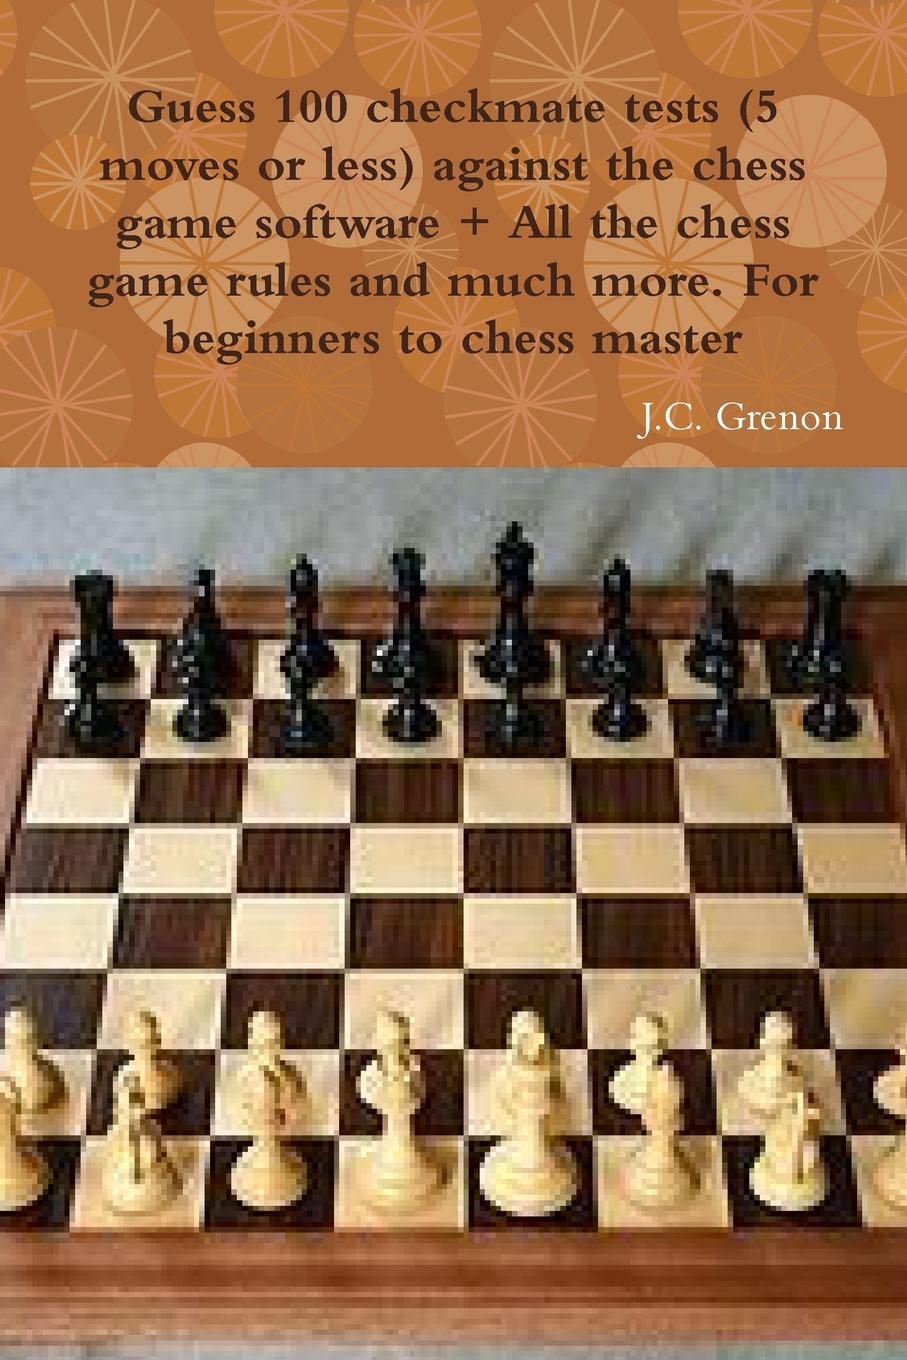 J.C. Grenon Guess 100 checkmate tests (5 moves or less) against the high chess software . All the chess rules and much more dangerous game level 3